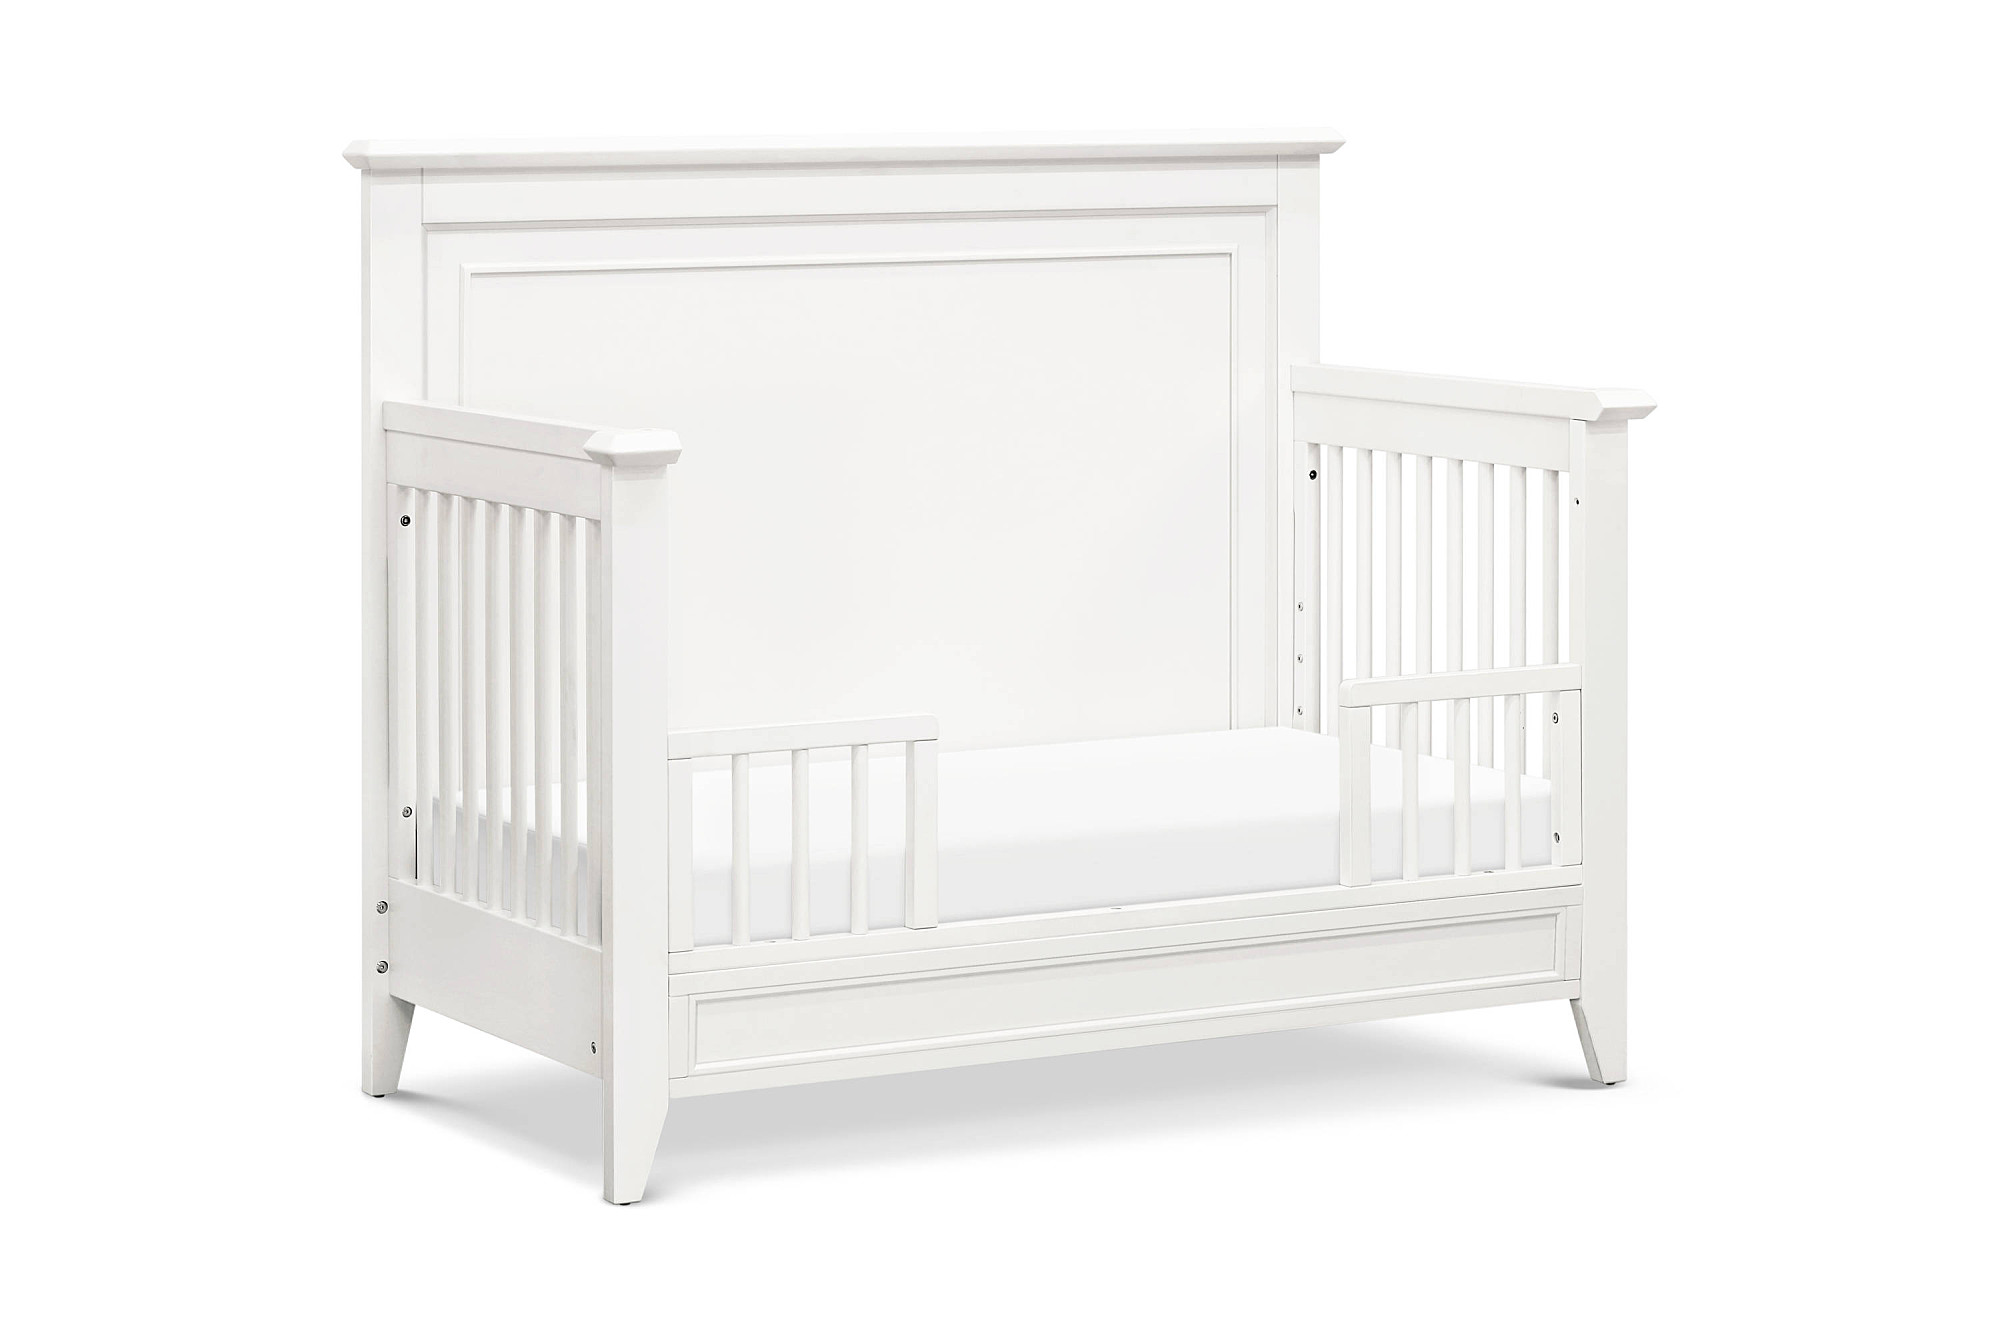 Franklin Ben Beckett 4 In 1 Convertible Crib Warm White Boutique Exclusive